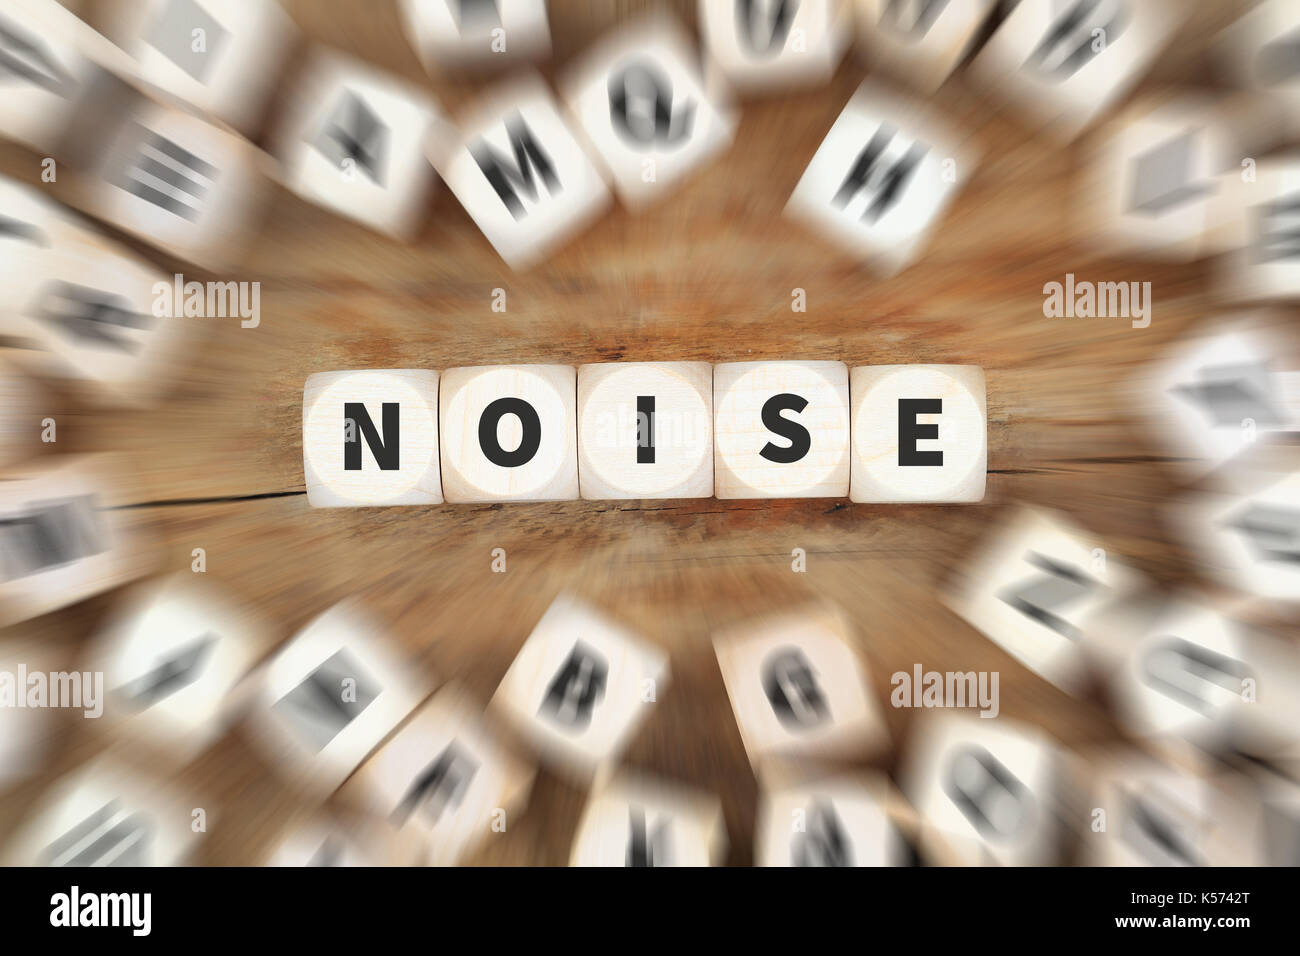 Noise pollution loud protection volume dice business concept idea - Stock Image